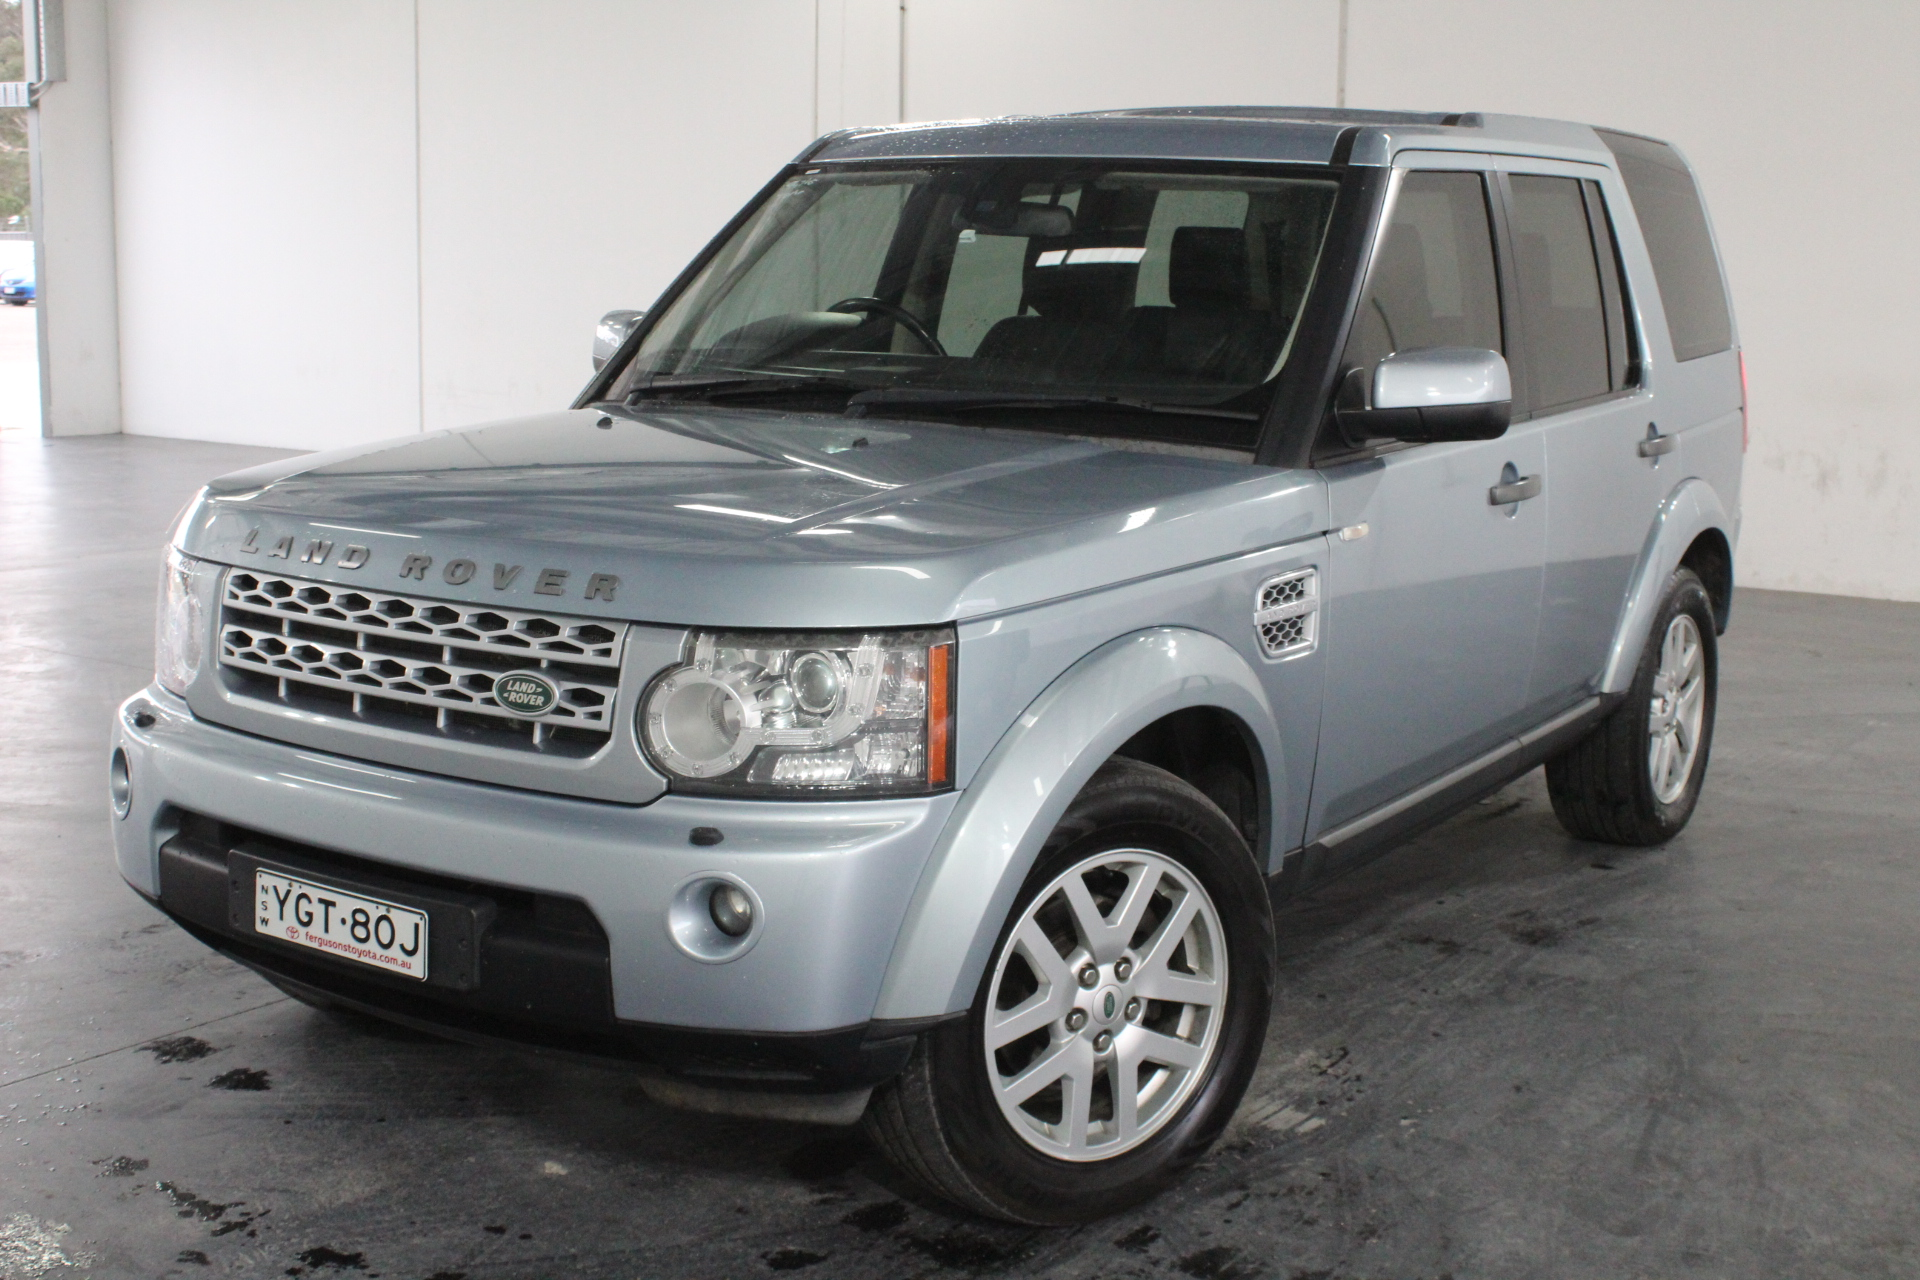 2011 Land Rover Discovery 4 2.7 TDV6 Series 4 T-Diesel Auto 7 Seats Wagon